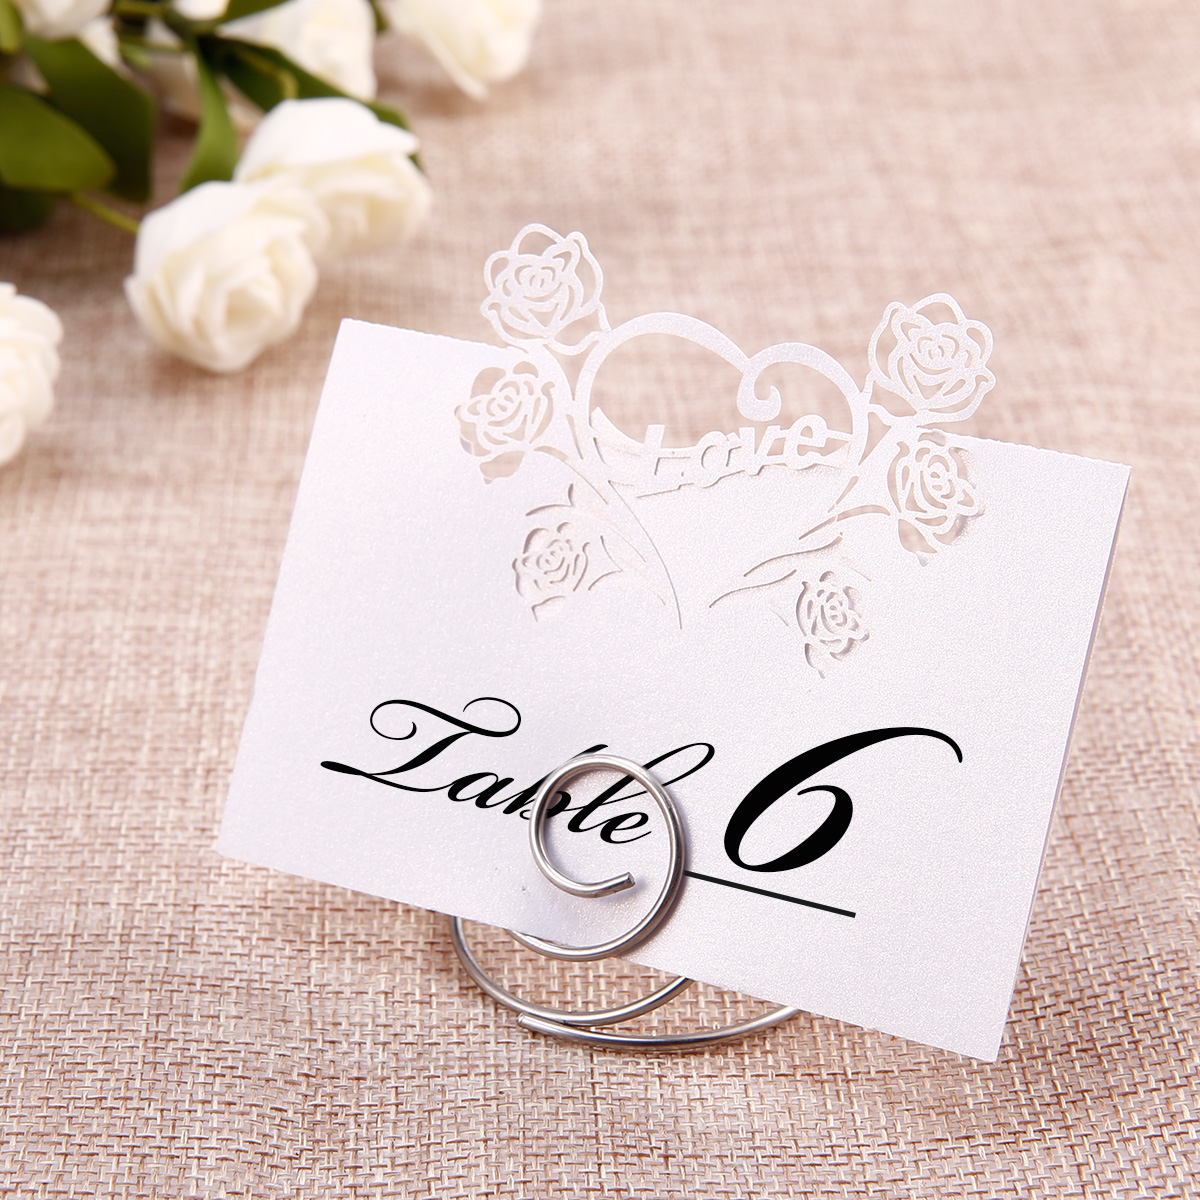 24 Pack Iron Wire Name Place Cards Stand Holder Table Wedding Party Decorations